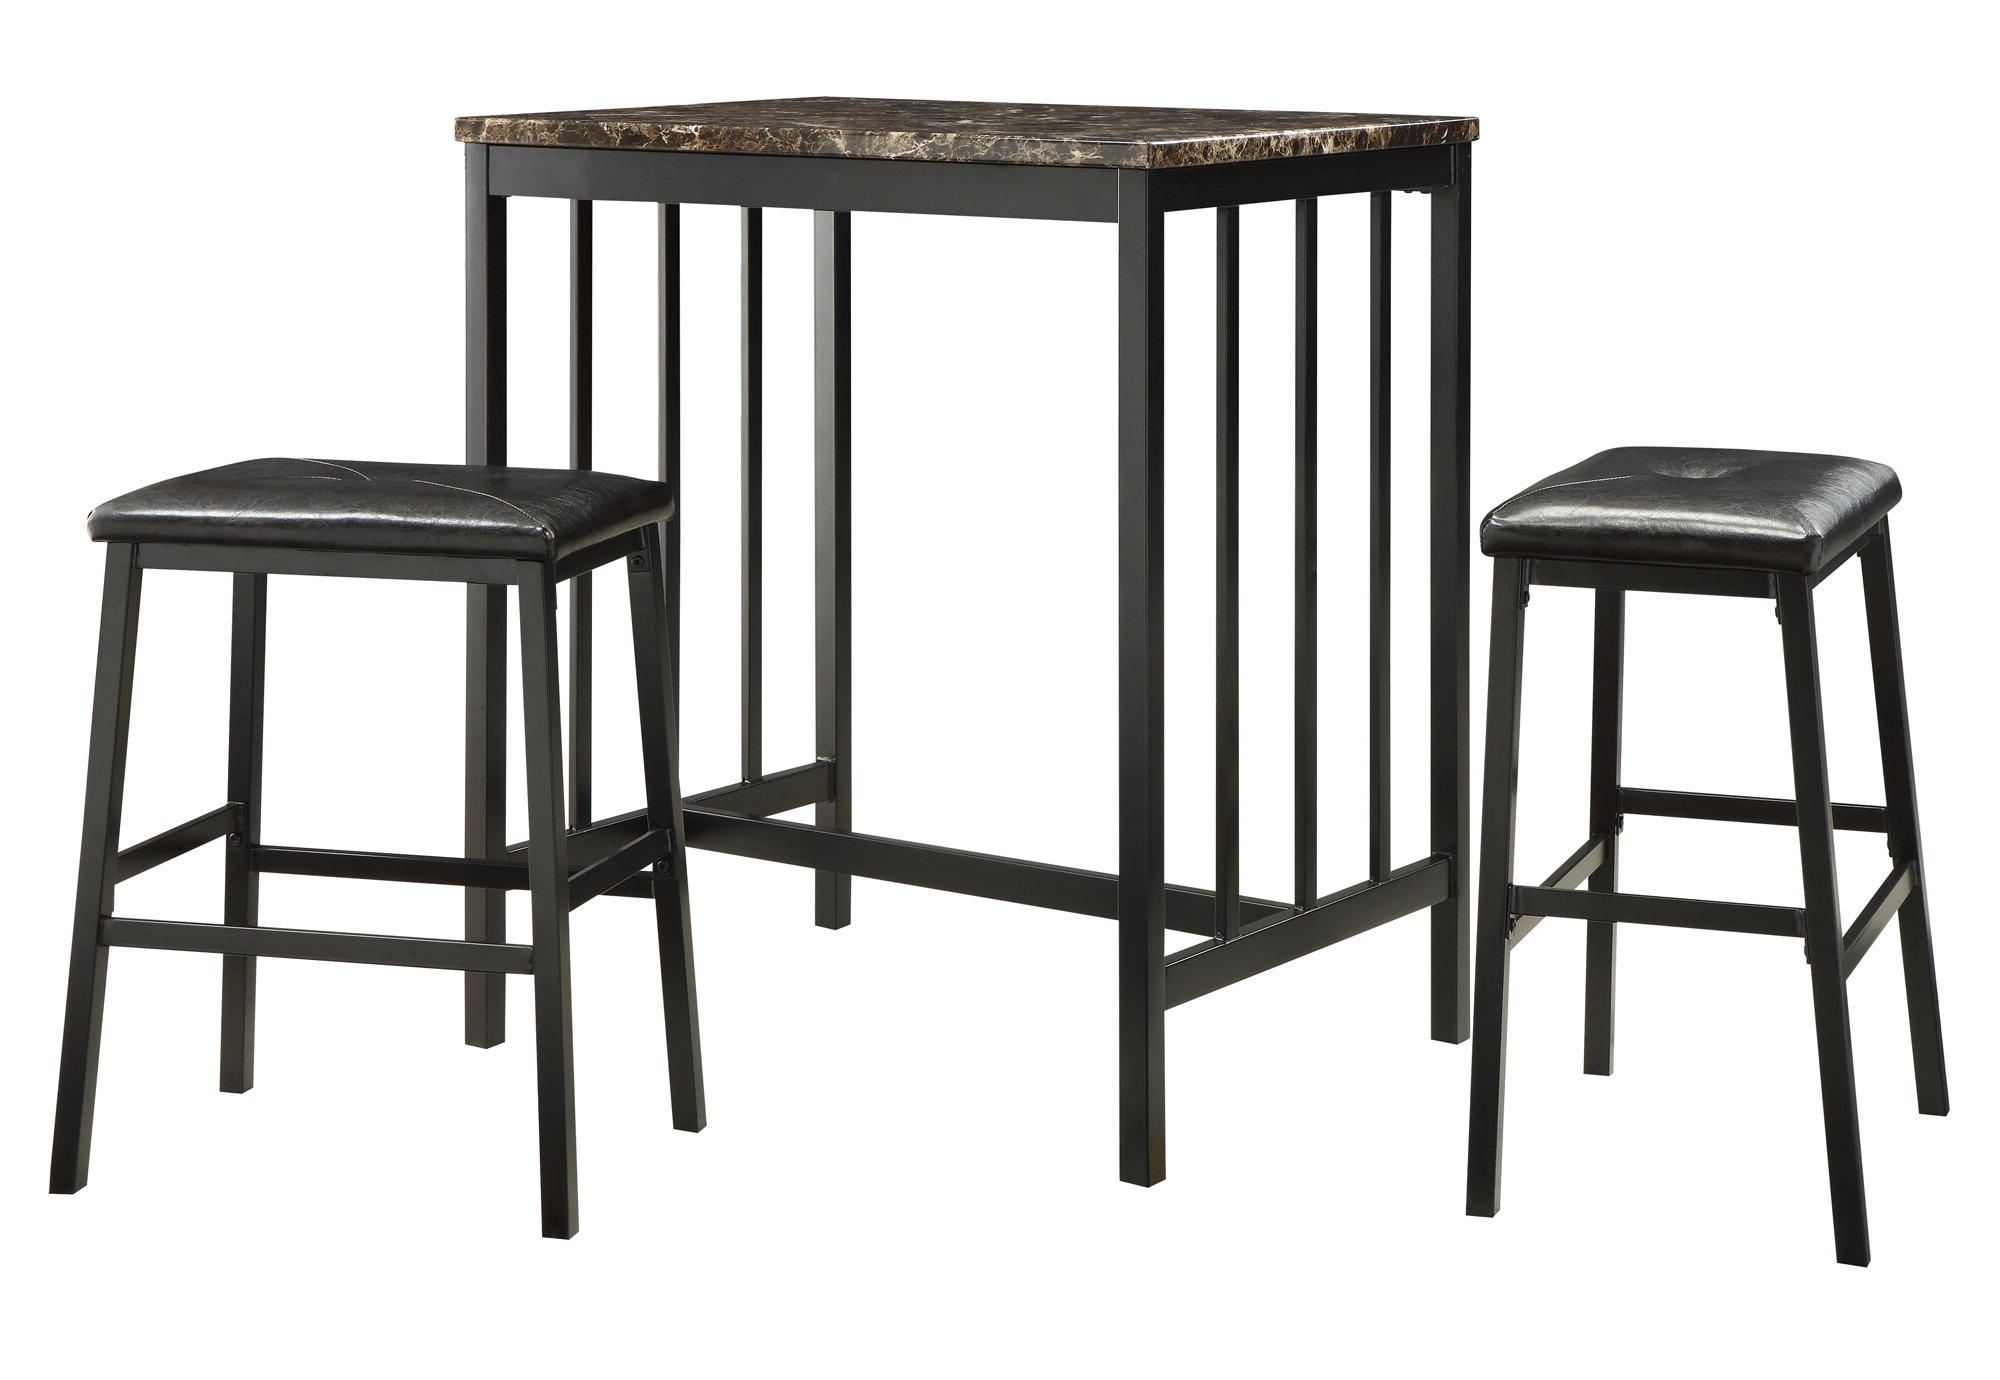 Wayfair With Current Askern 3 Piece Counter Height Dining Sets (Set Of 3) (View 6 of 25)